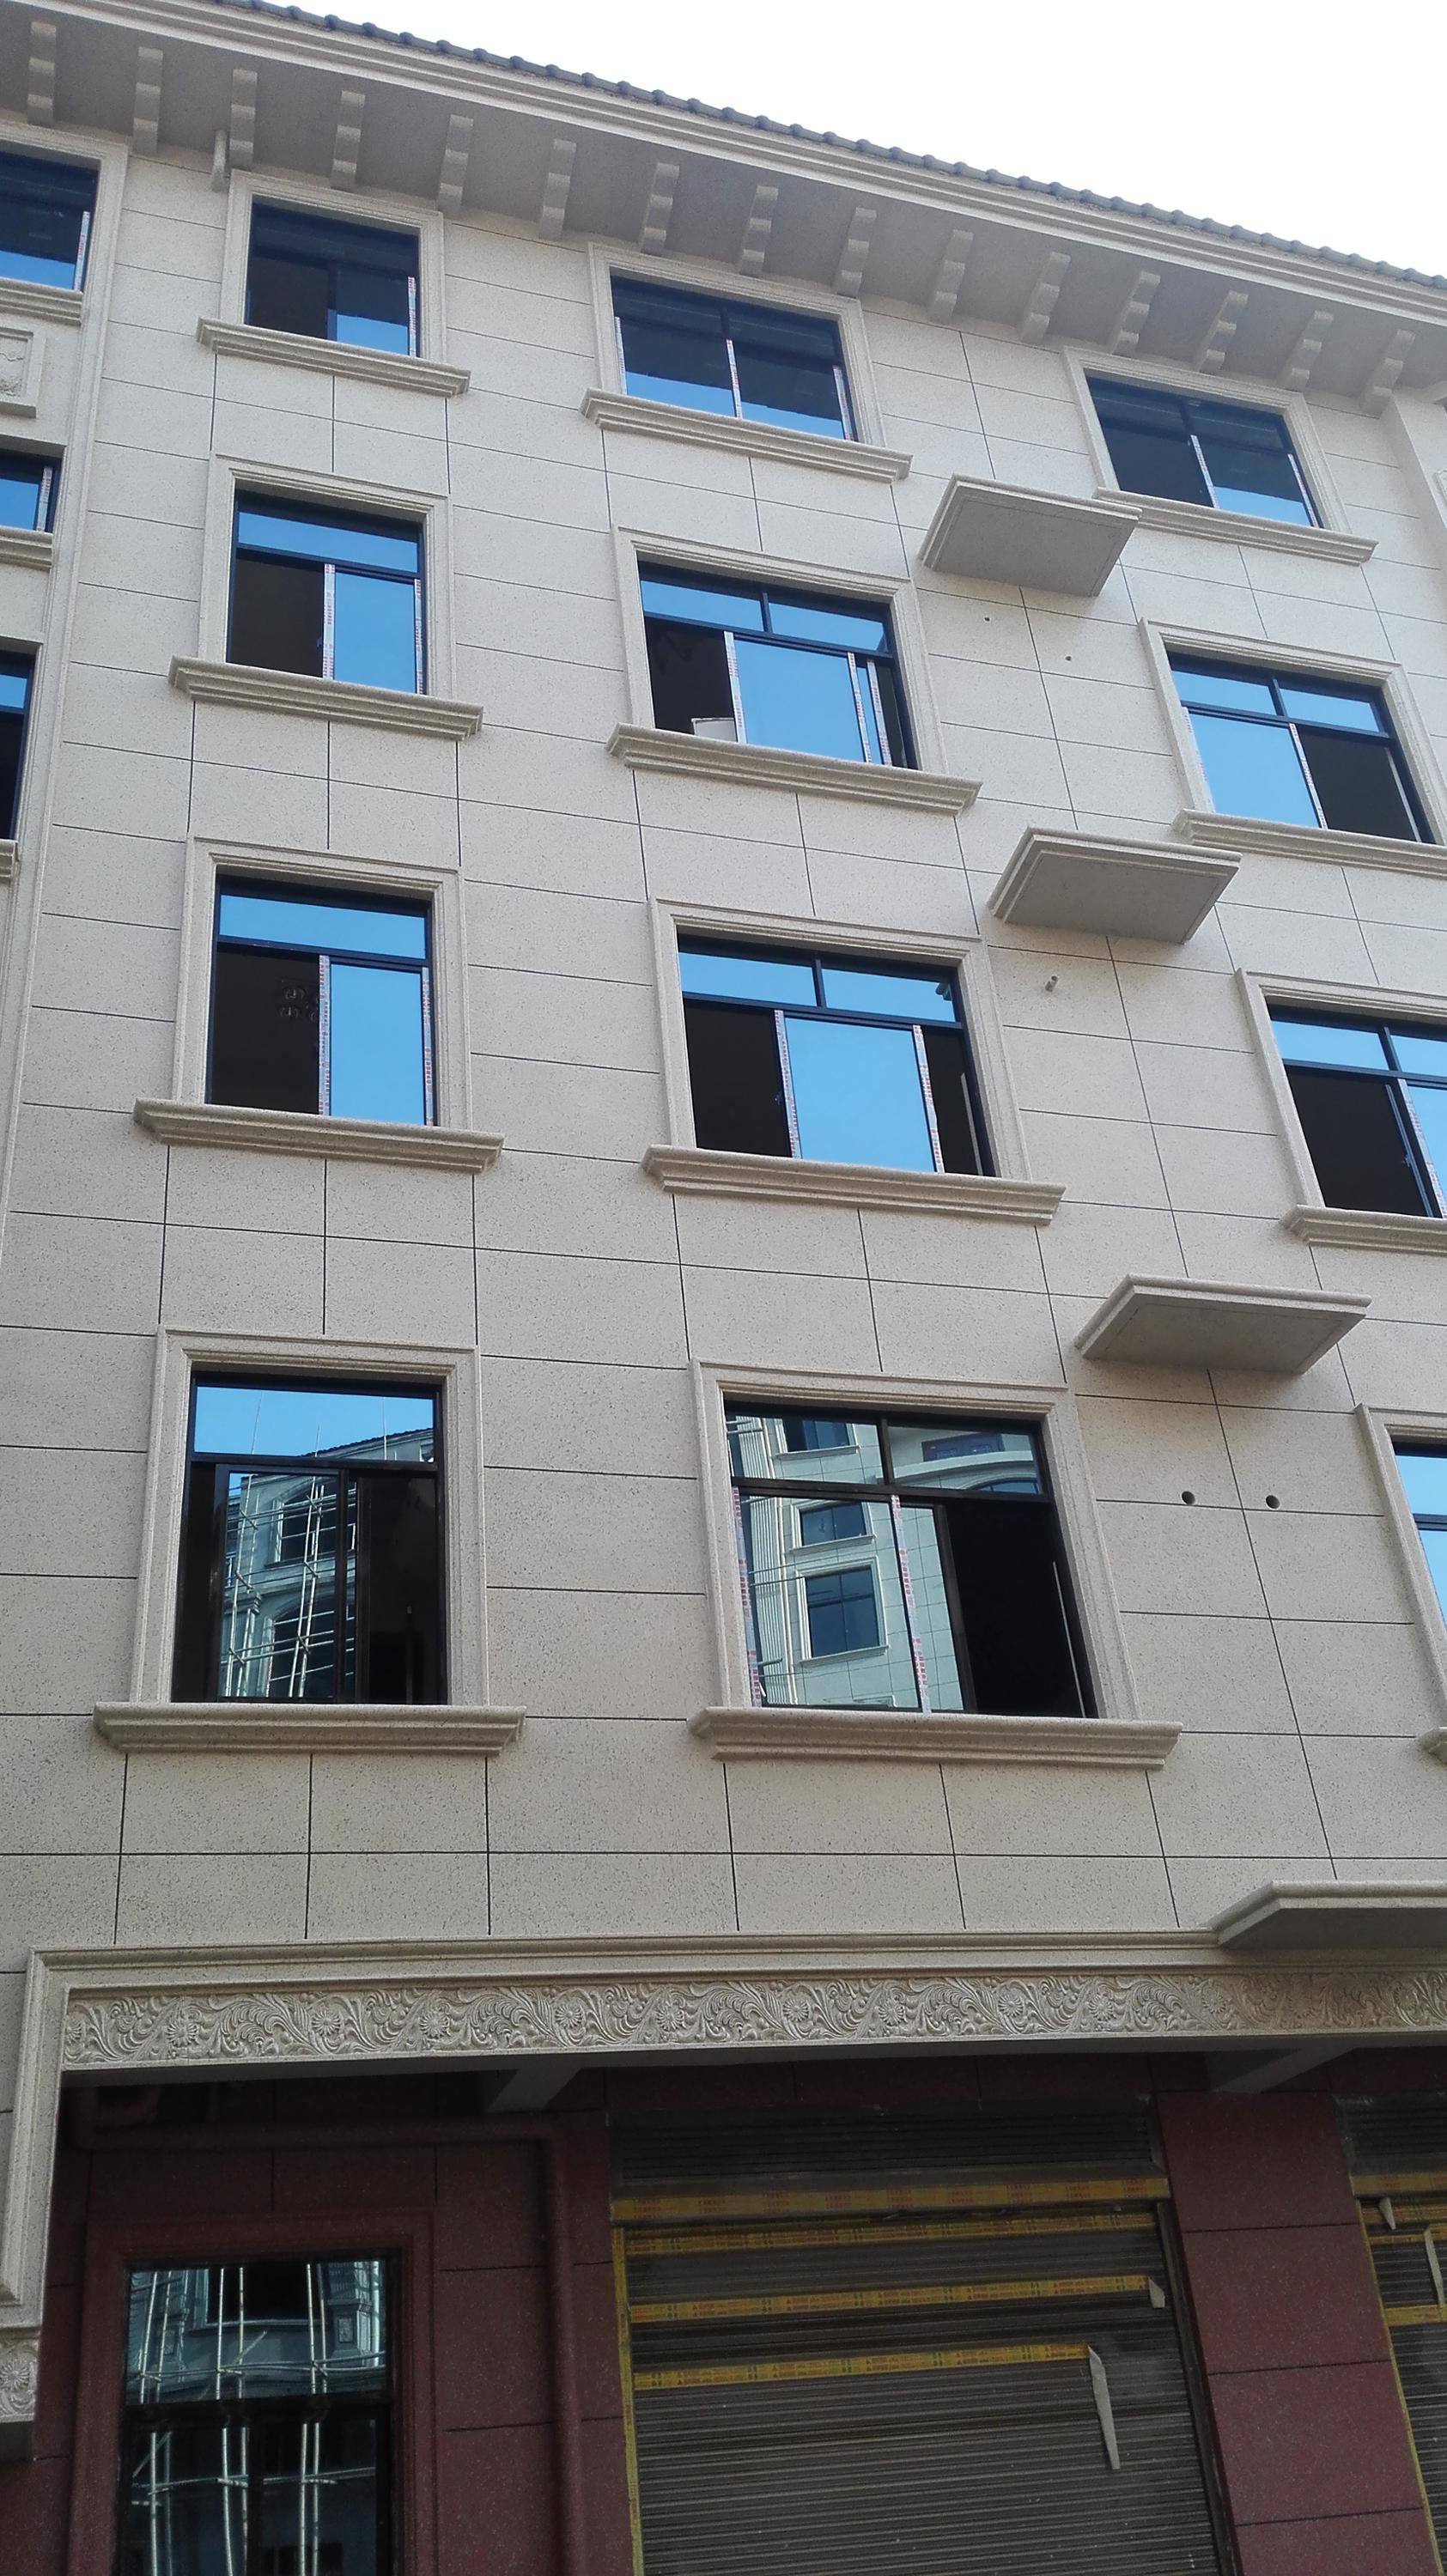 Window Casing Styles Decoration EPS Cornice Moulding Designs For Wall